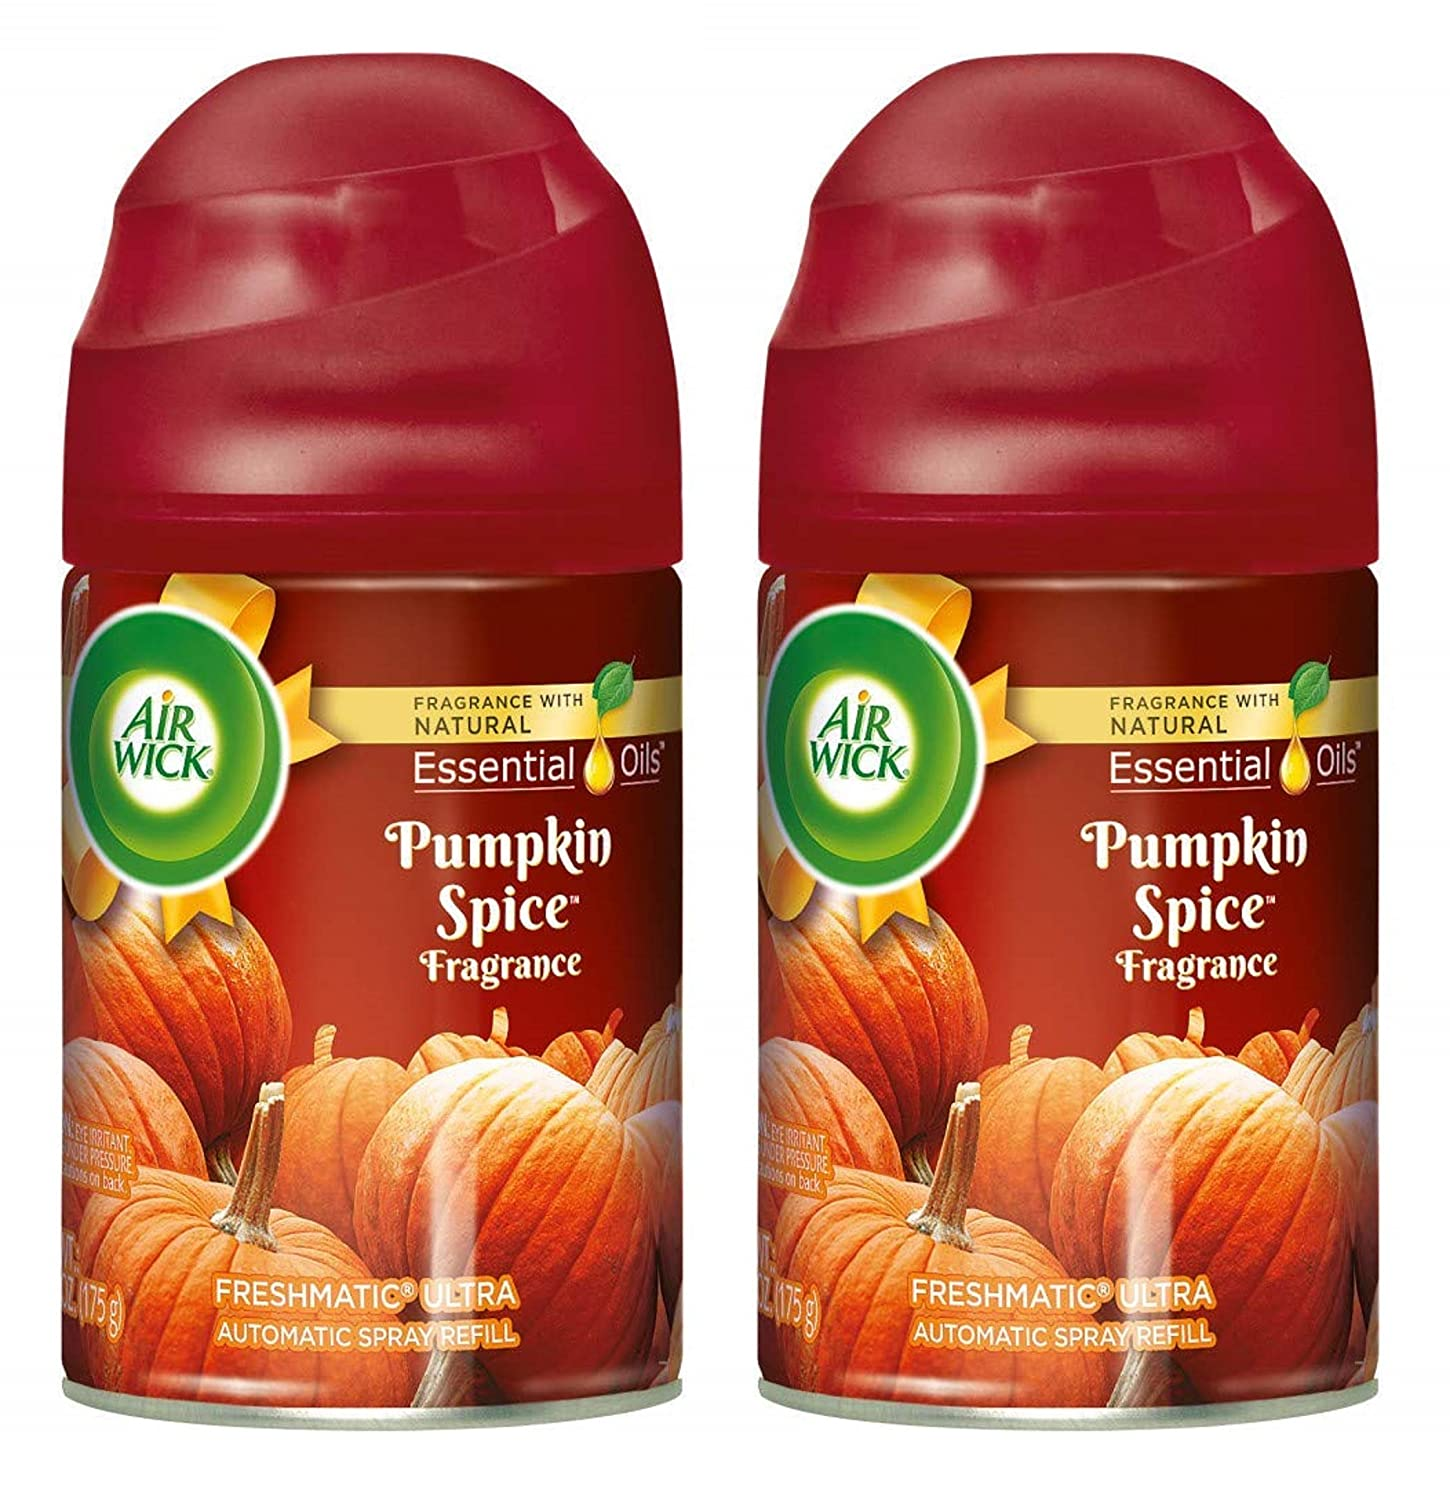 Air Wick Freshmatic Ultra Automatic Spray Refill - Holiday Collection 2018 - Pumpkin Spice - Net Wt. 6.17 OZ (175 g) Per Refill Can - Pack of 2 Refill Cans